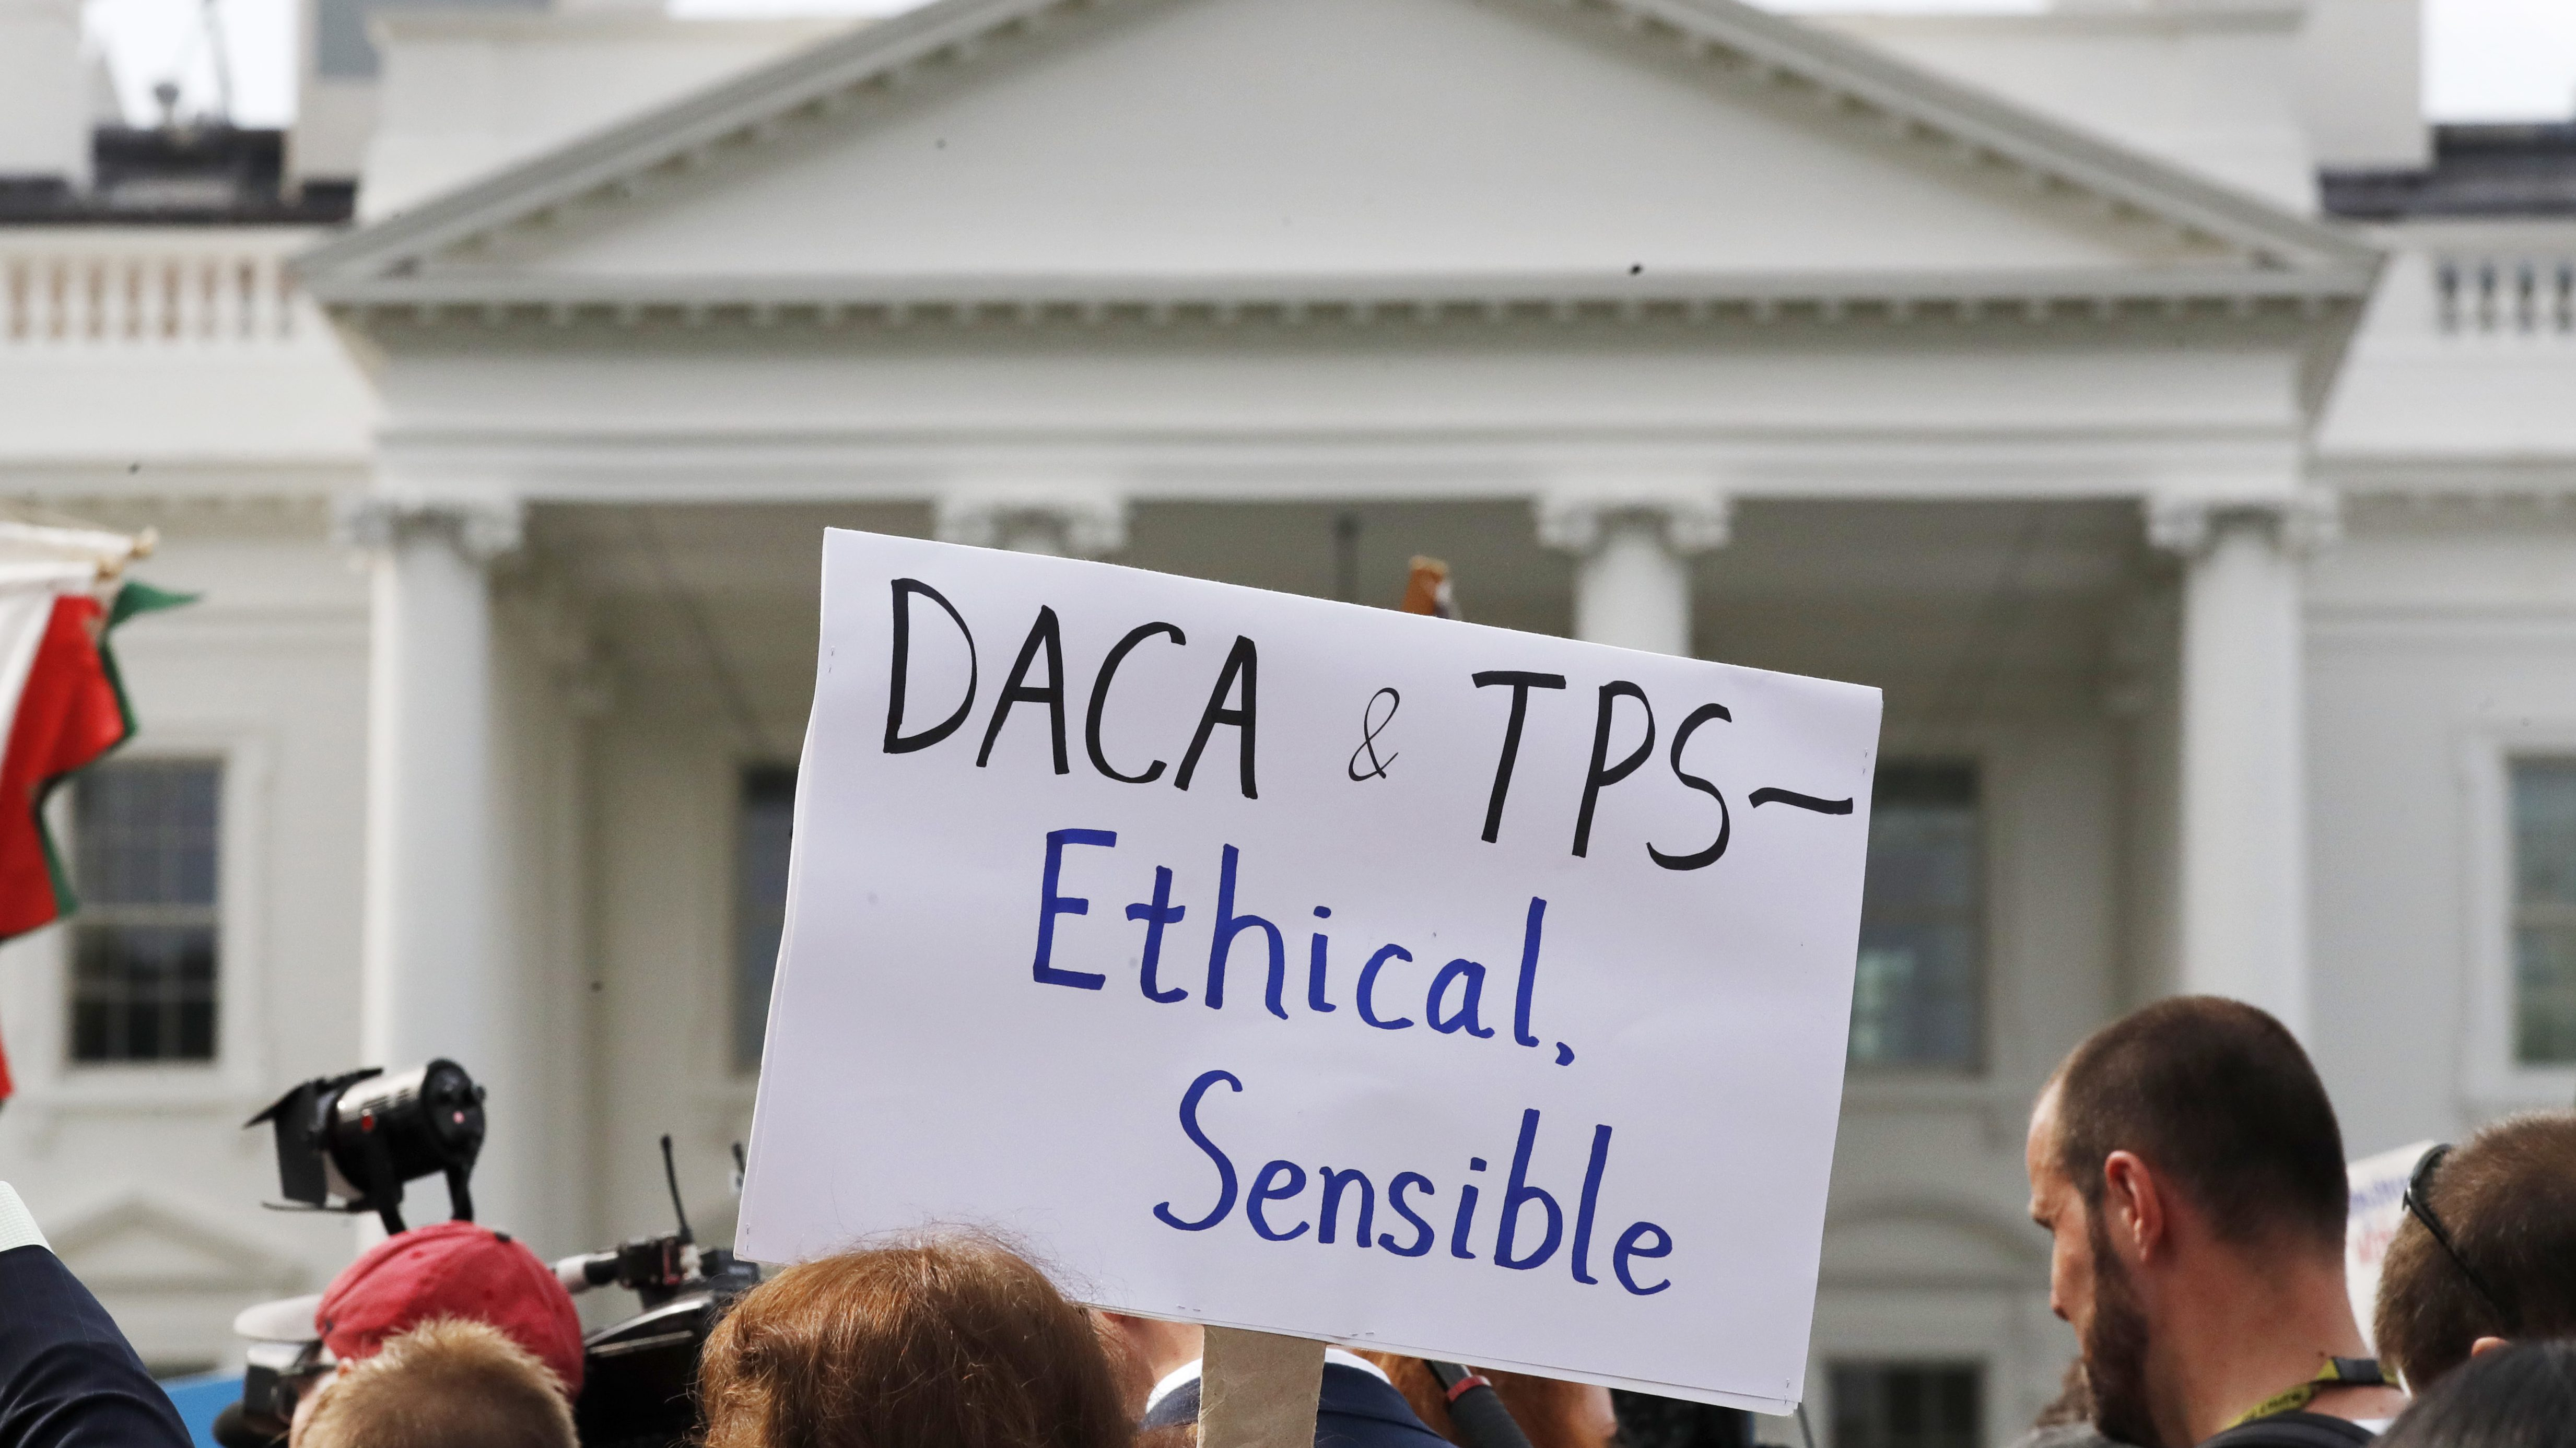 """A person holds up a sign in support of the Deferred Action for Childhood Arrivals, known as DACA, and Temporary Protected Status programs during a rally in support of DACA and TPS outside of the White House, in Washington, Tuesday, Sept. 5, 2017. President Donald Trump's administration will """"wind down"""" a program protecting hundreds of thousands of young immigrants who were brought into the country illegally as children, Attorney General Jeff Sessions declared Tuesday, calling the Obama administration's program """"an unconstitutional exercise of authority.""""  (AP Photo/Jacquelyn Martin)"""